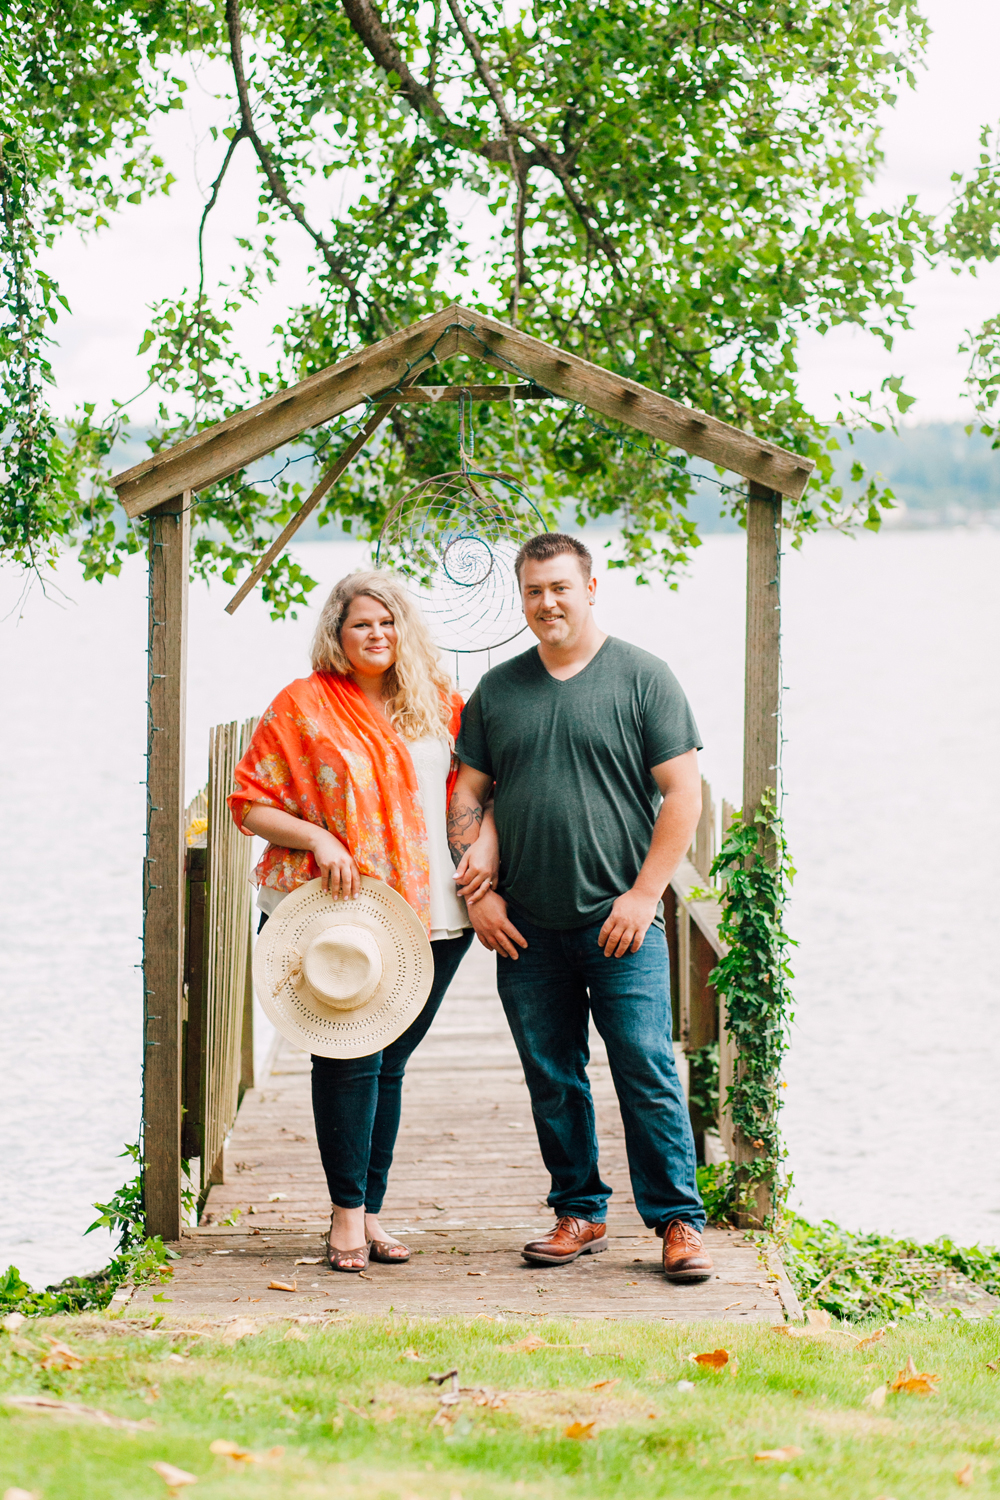 015-seattle-engagement-photographer-katheryn-moran-lake-washington-ashley-zach.jpg